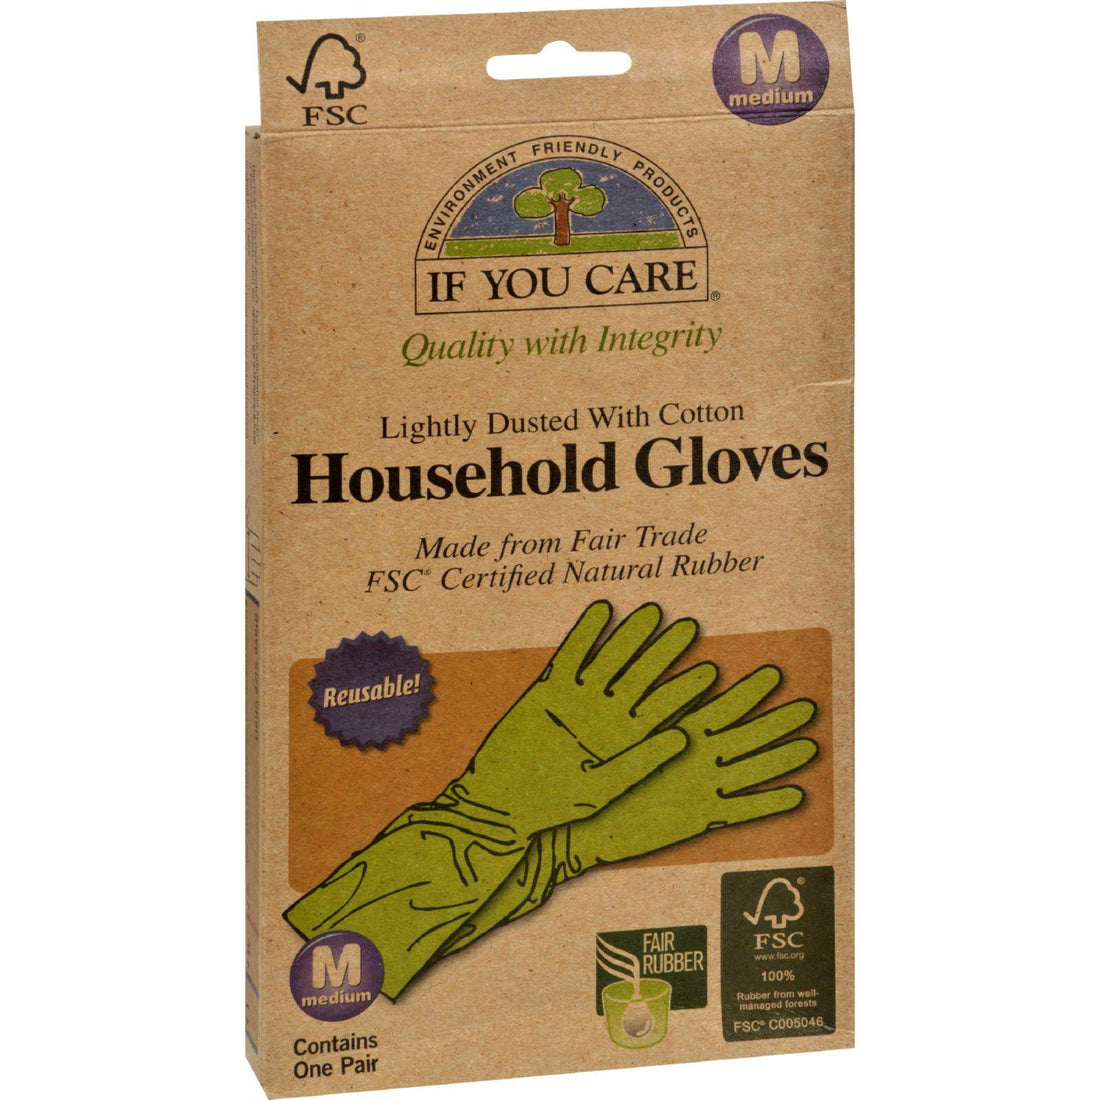 Mother Mantis: If You Care Household Gloves - Medium - 12 Pairs If You Care